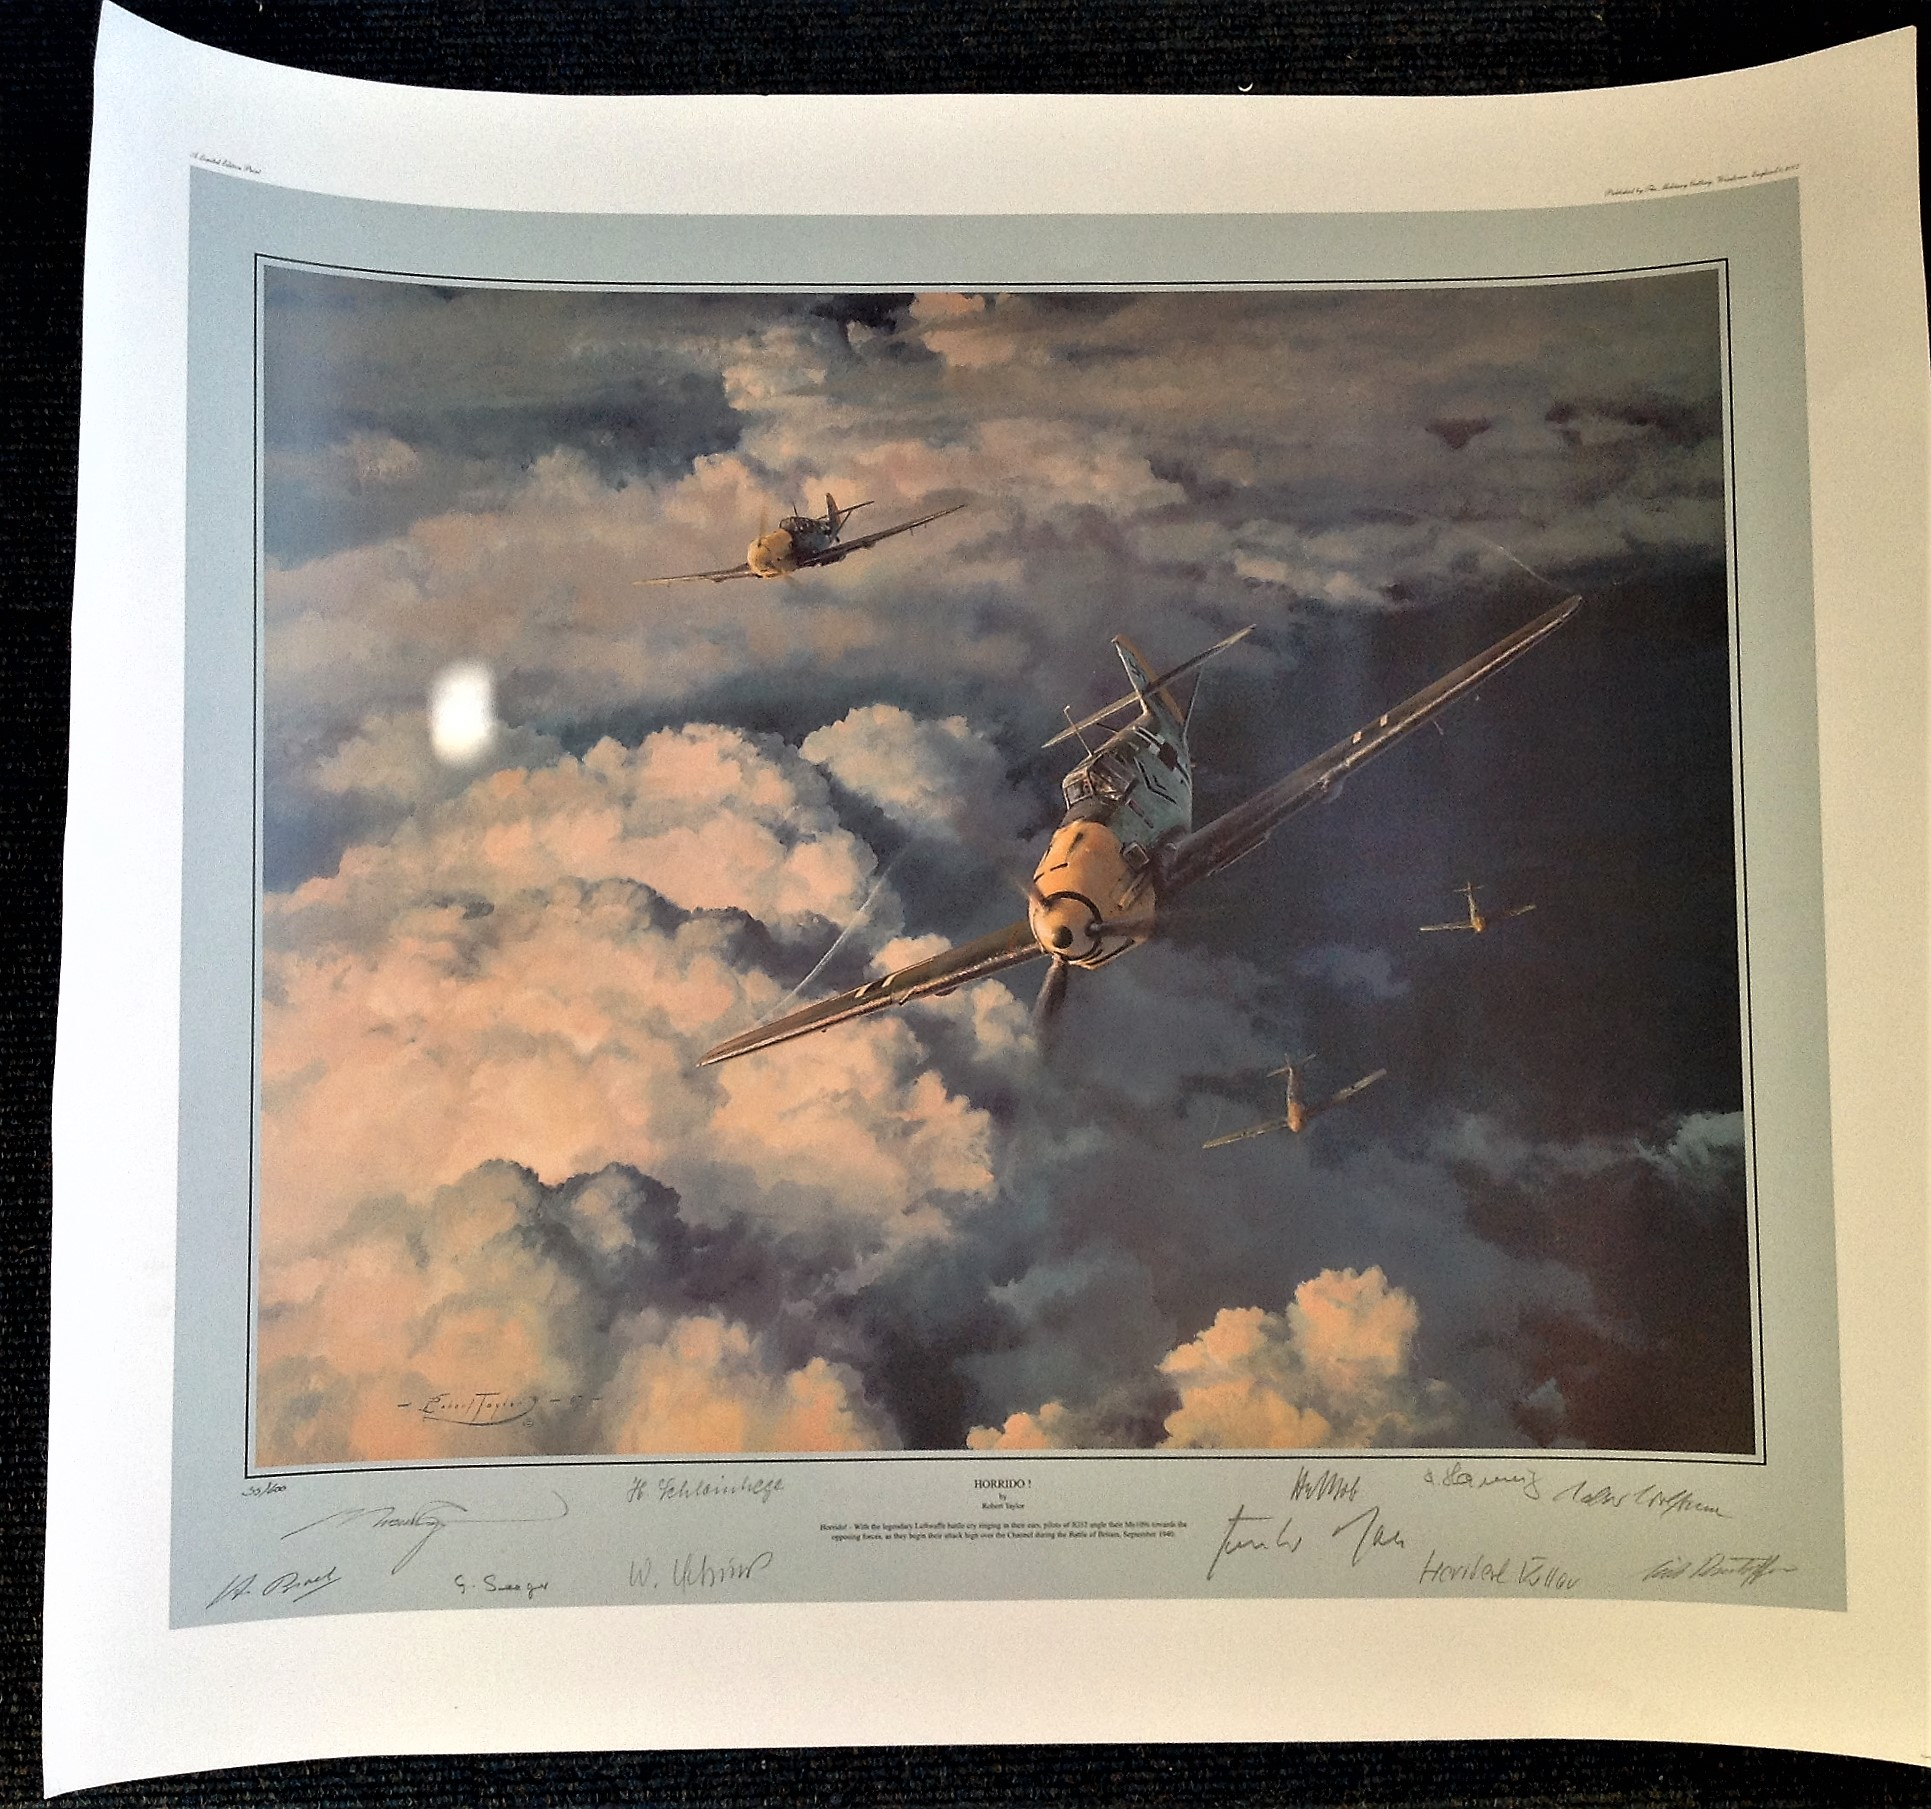 Robert Taylor 27x30 Horrido 35 600 Luftwaffe Aces Edition print with 10 Luftwaffe fighter Ace